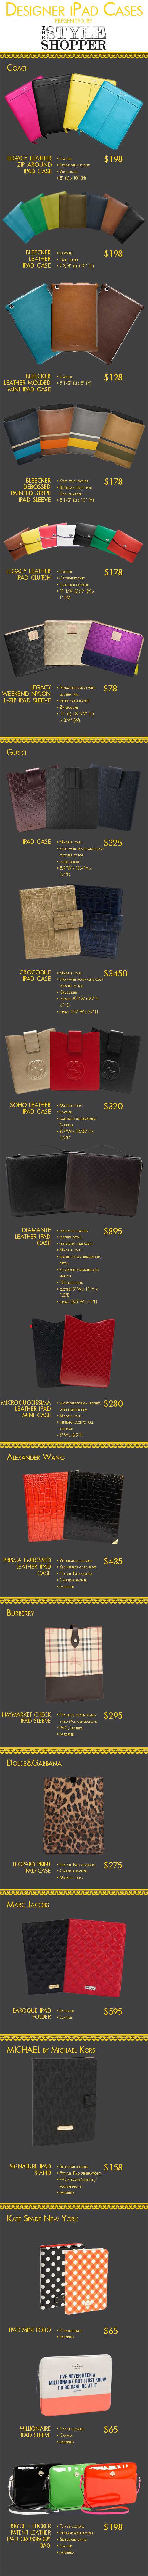 the designer ipad cases info-graphic from The StyleShopper is really a well-constructed and organized on-line demonstration of the latest offerings in the market for the seeker of top-of-the-line covers.